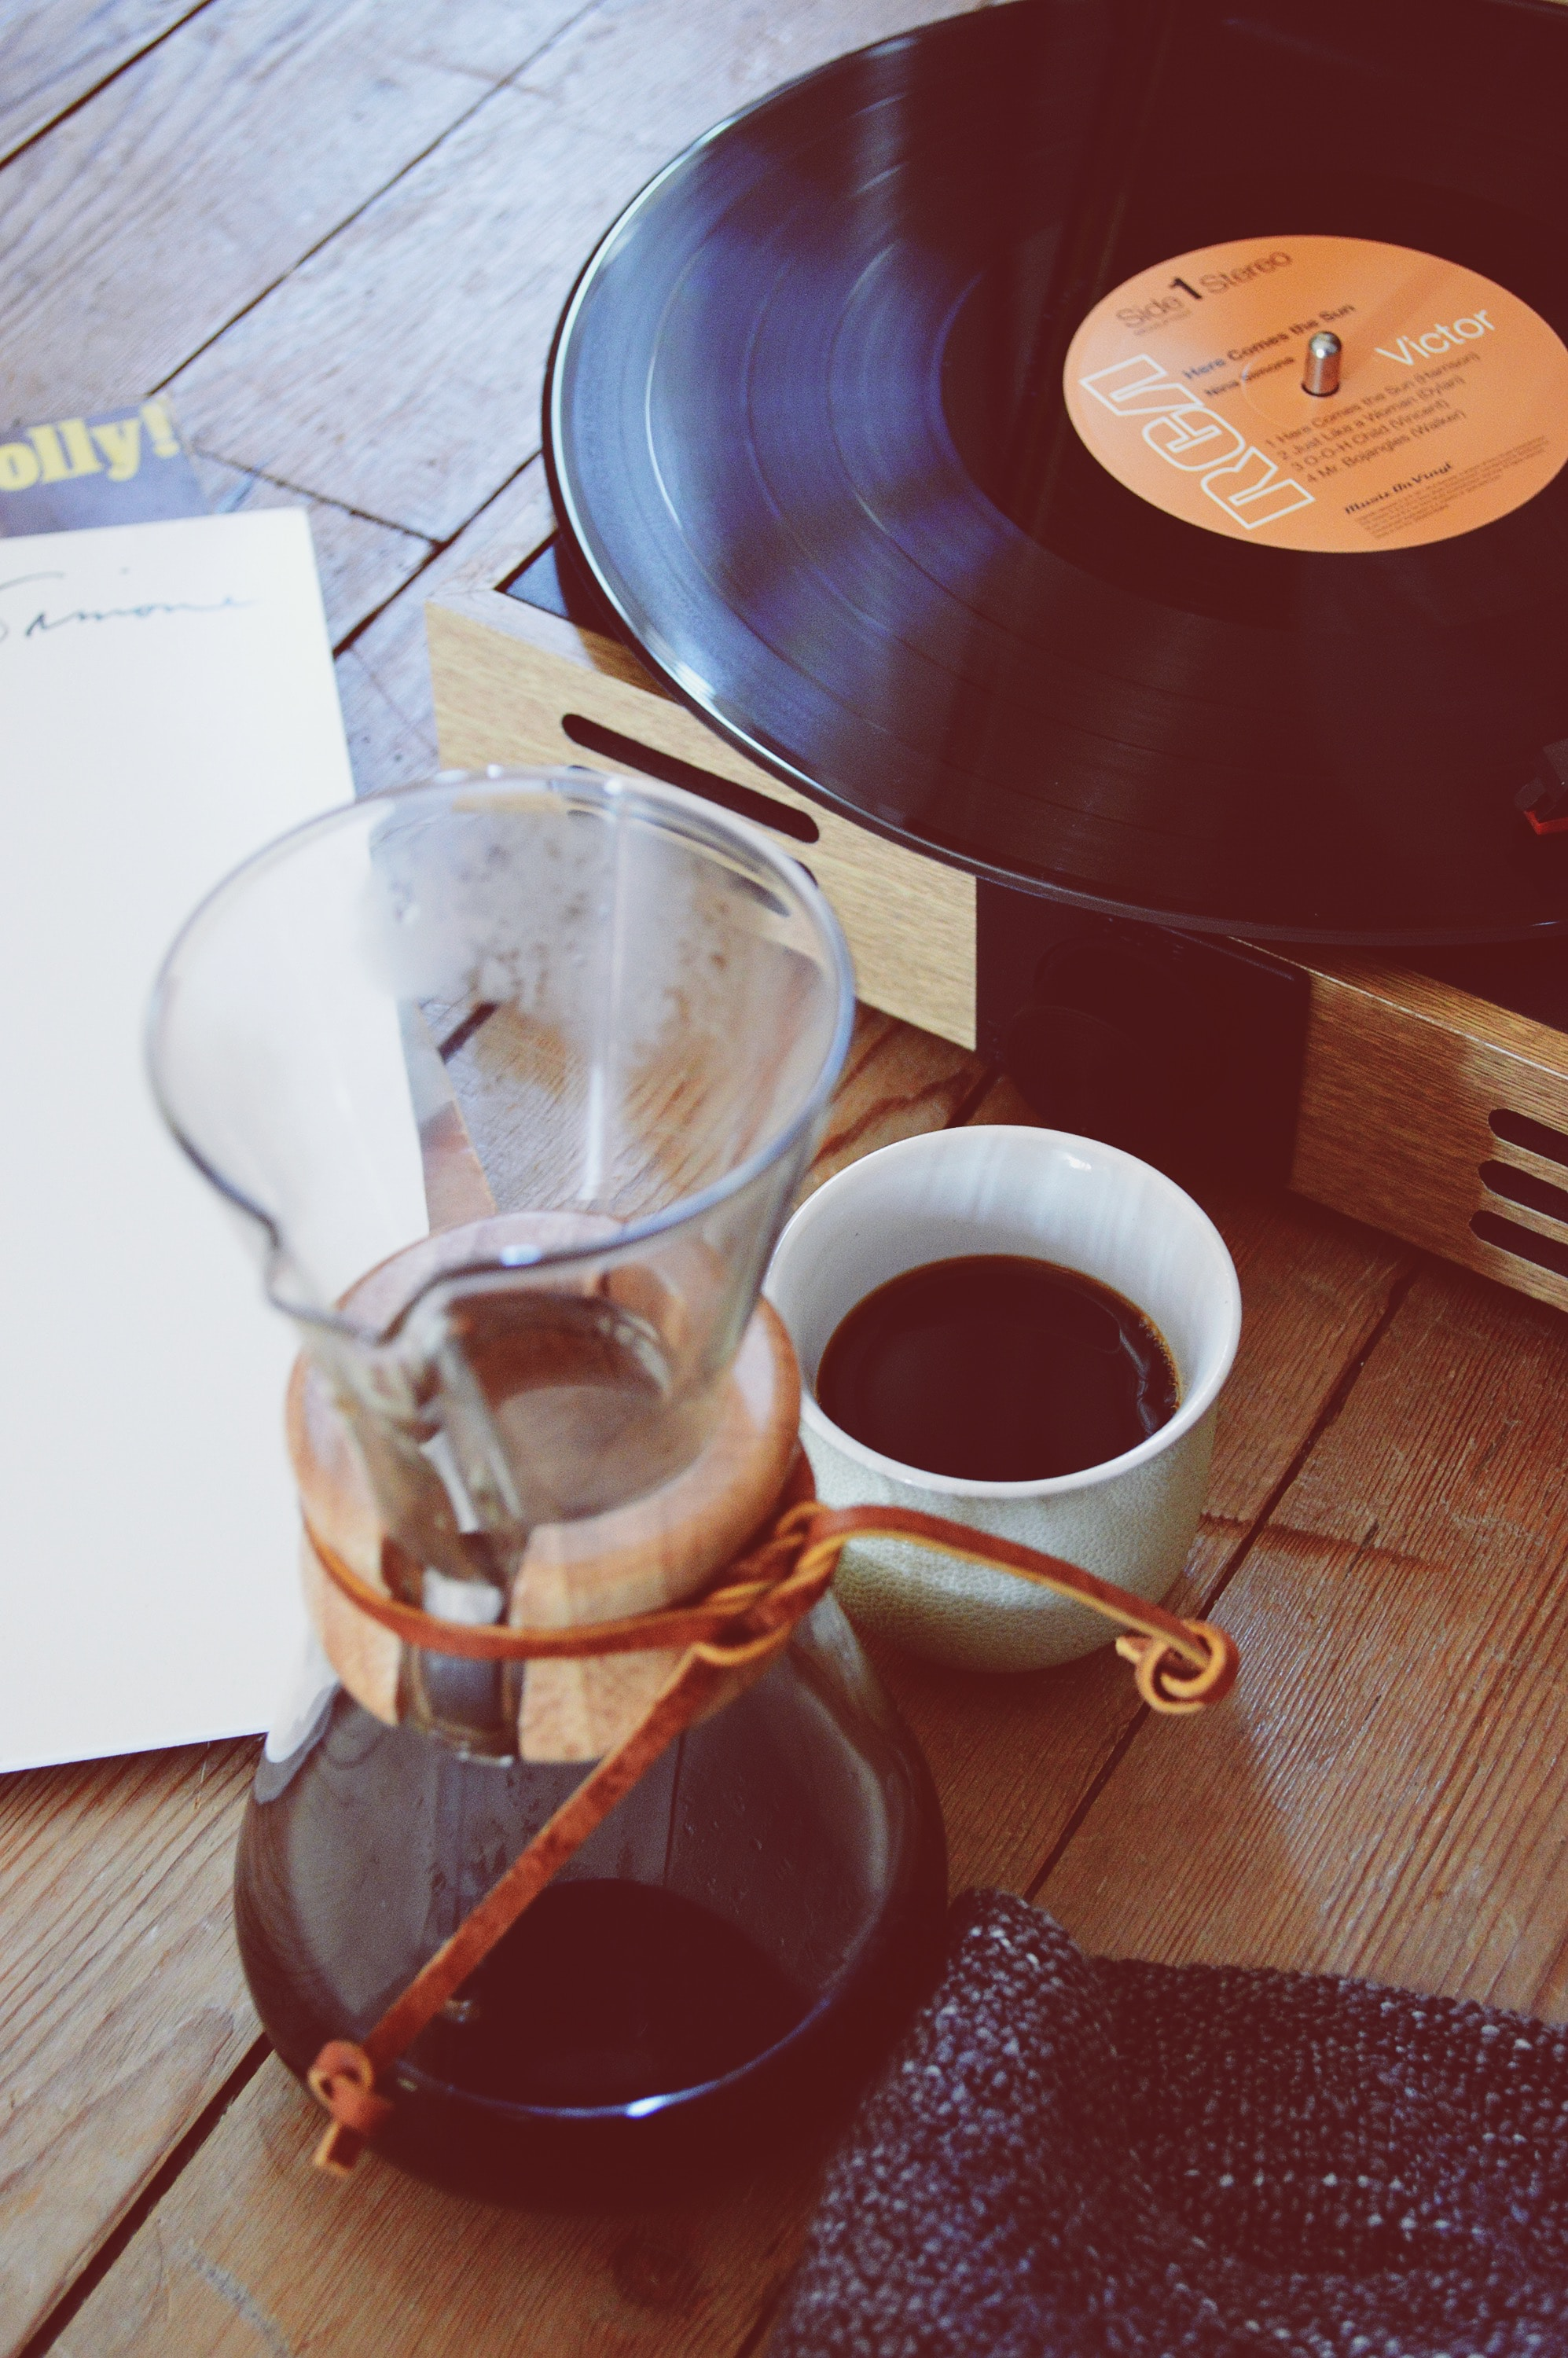 image of a coffee mug and a record